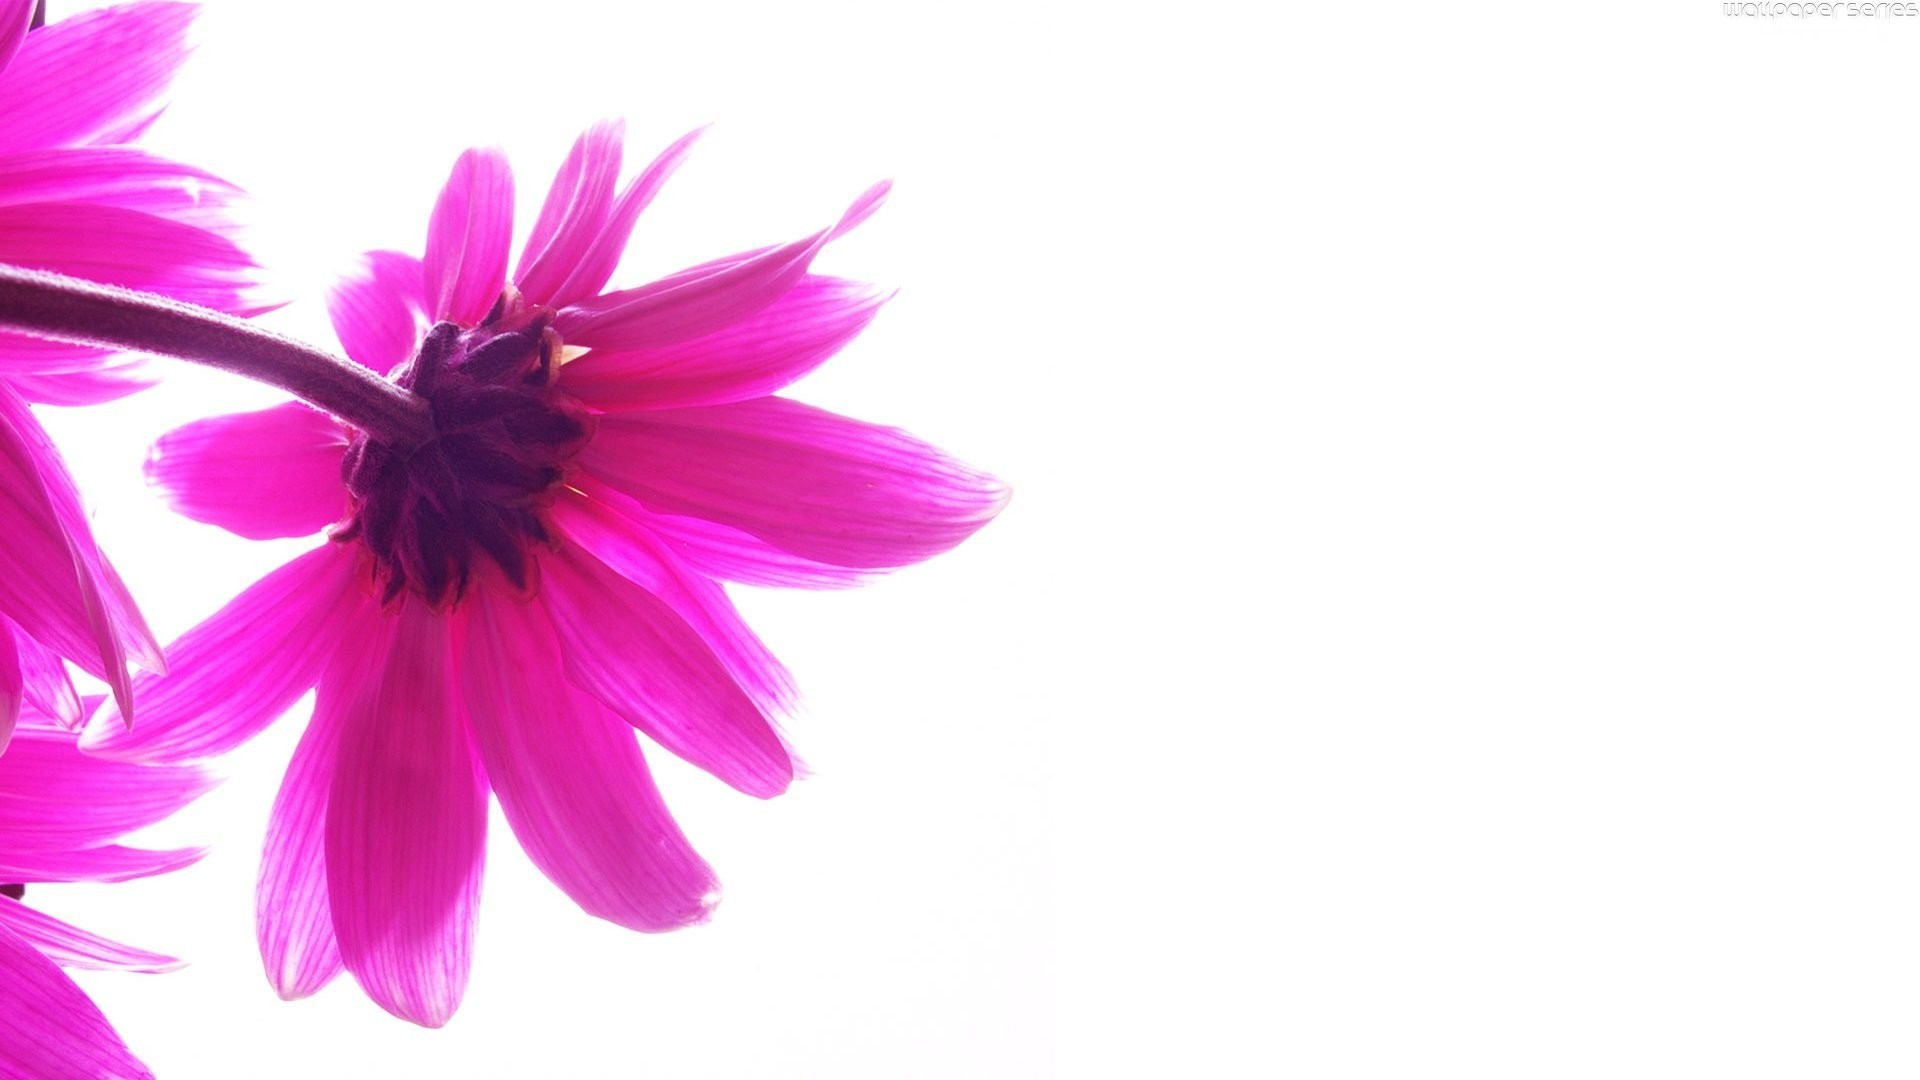 flower-white-and-pink-abstract-backgrounds